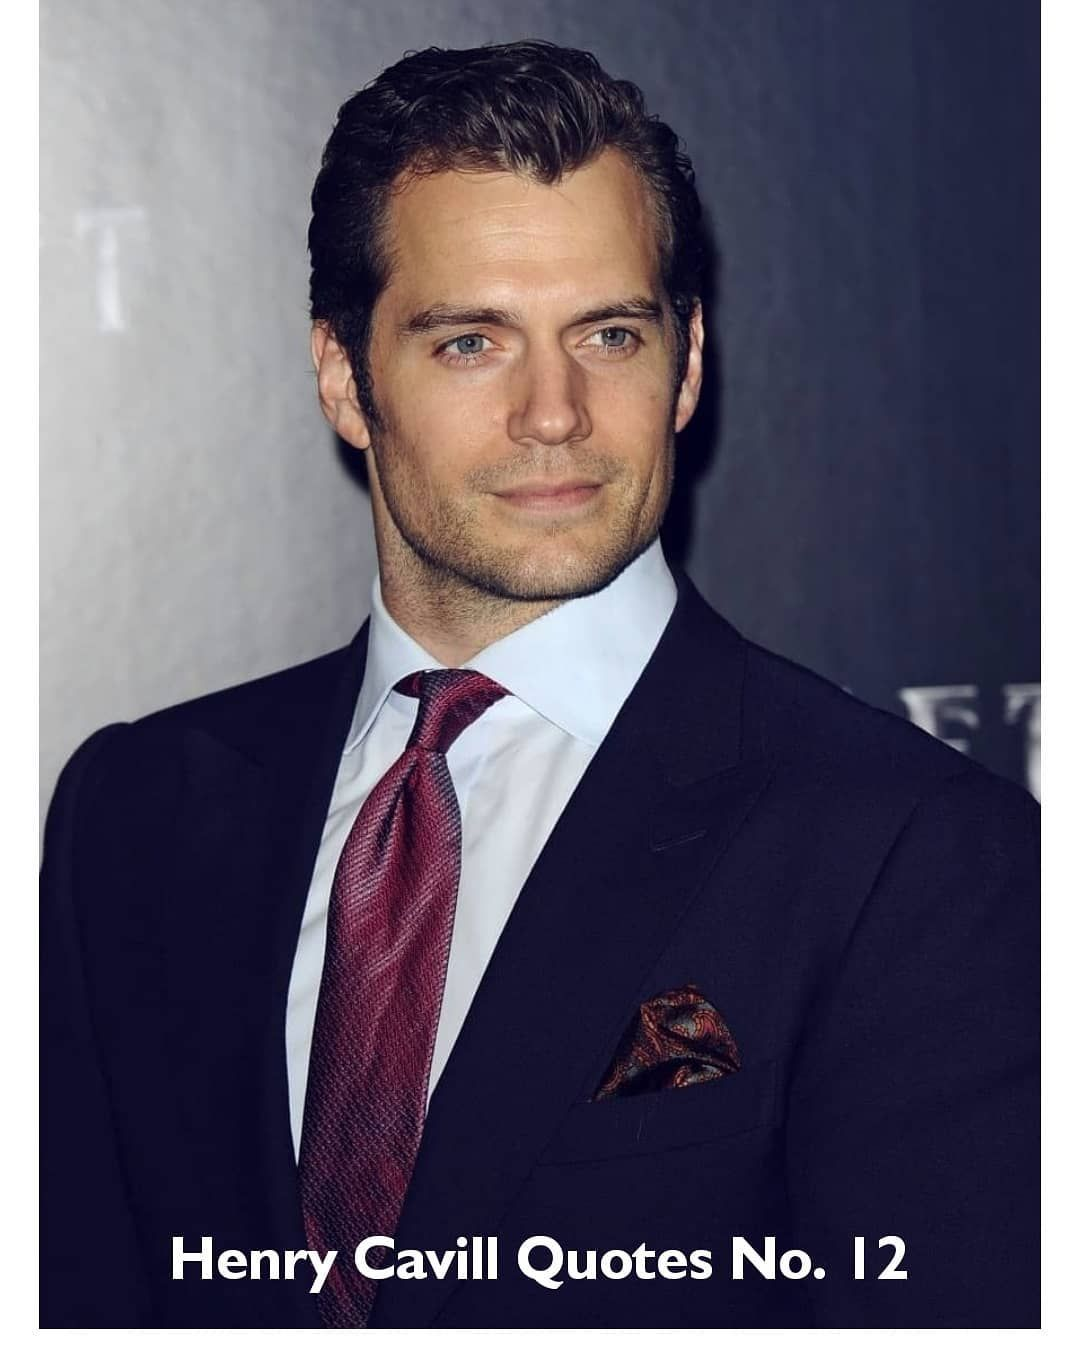 Henry Cavill Quotes No 12